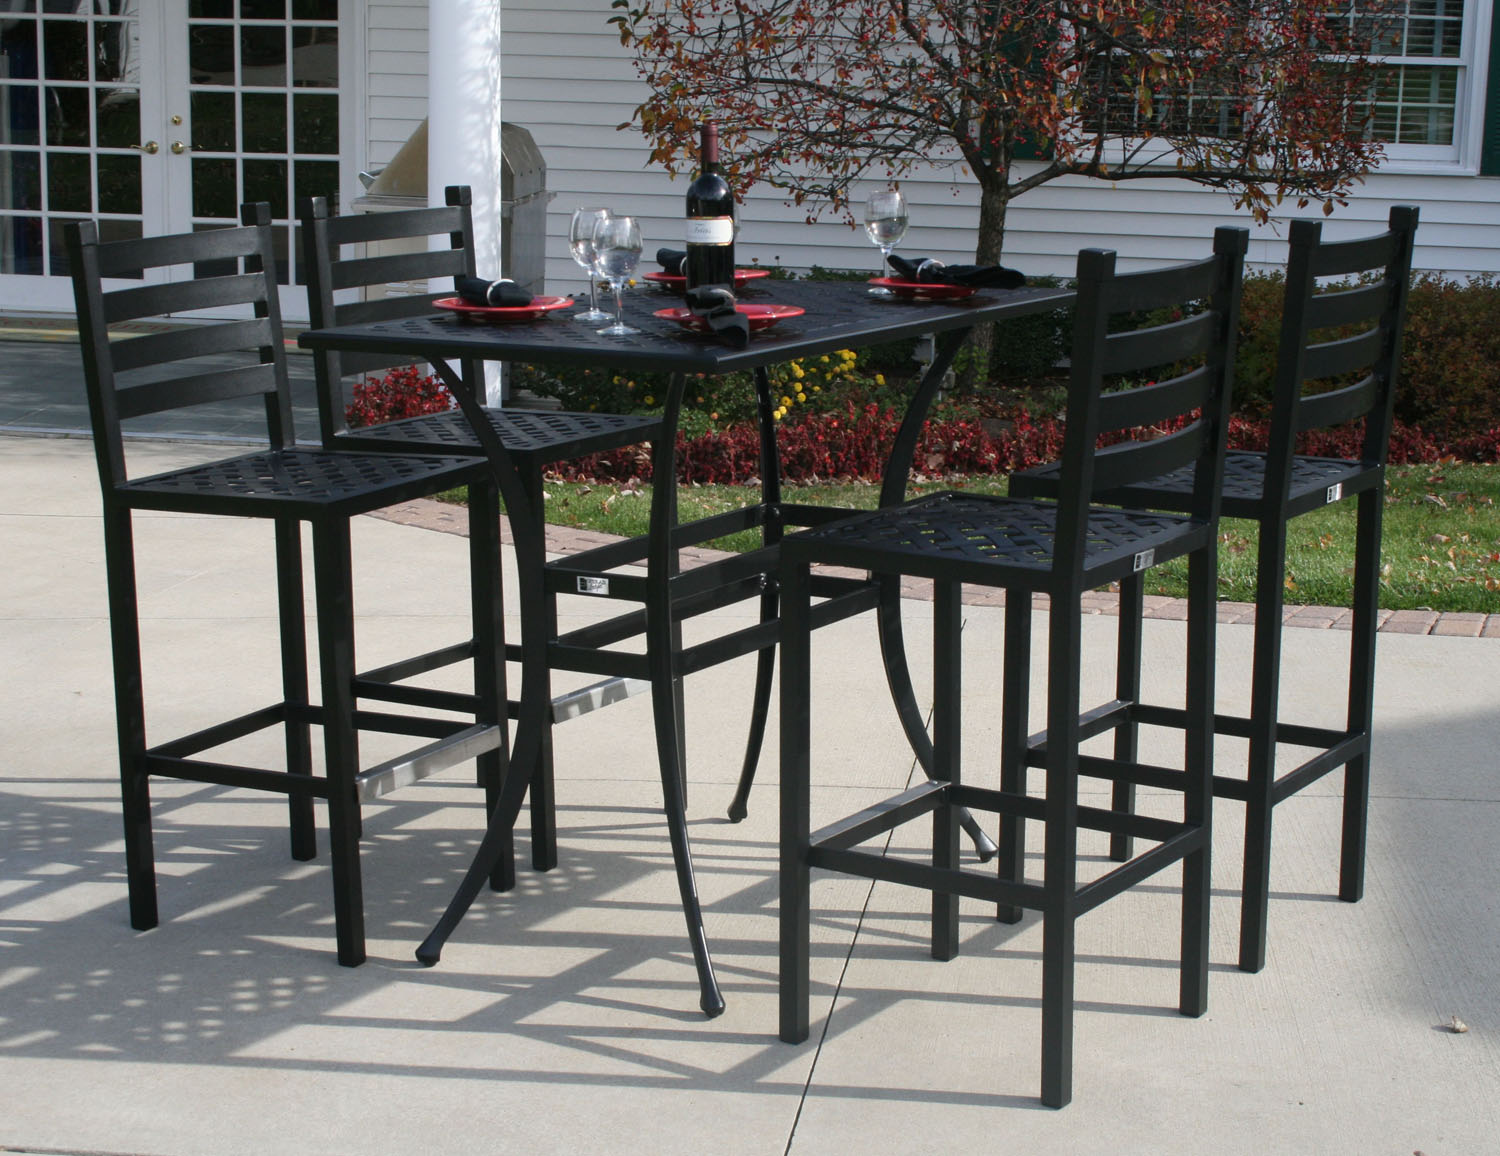 Ansley luxury 4 person all welded cast aluminum patio furniture bar ansley luxury 4 person all welded cast aluminum patio furniture bar height set watchthetrailerfo